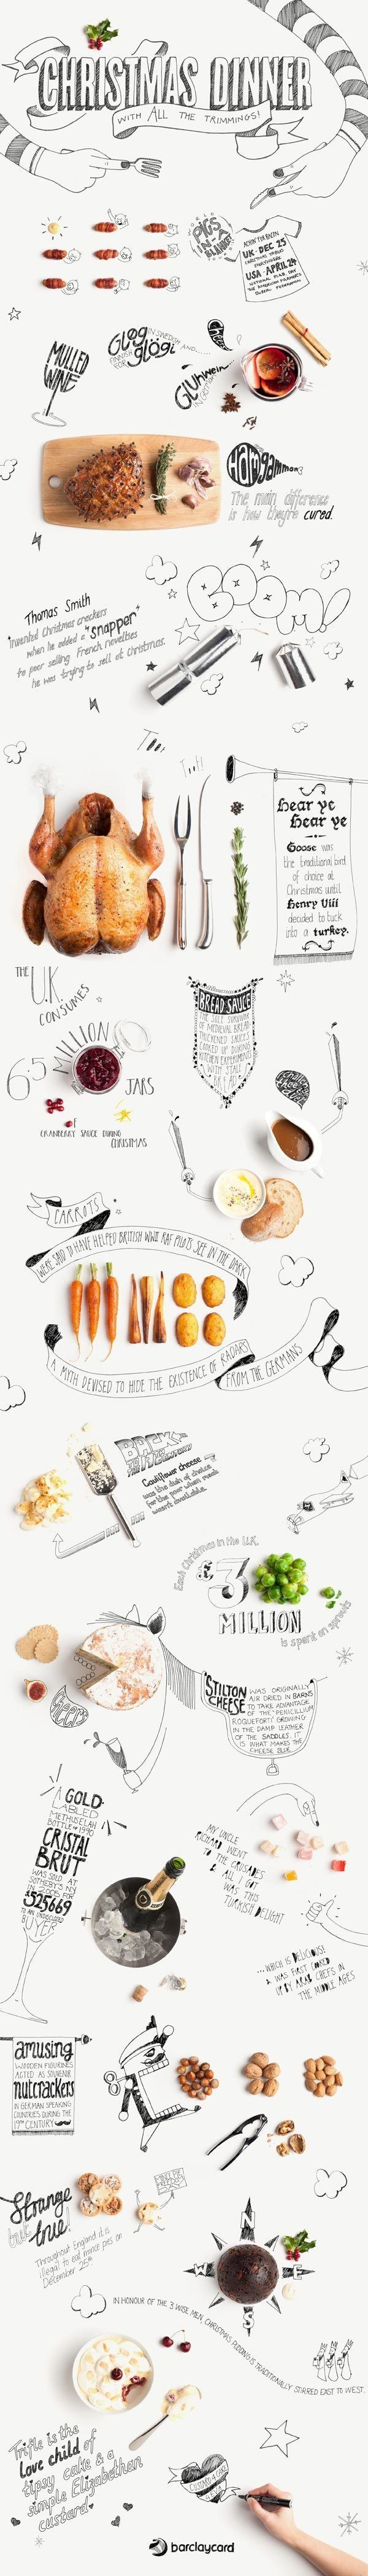 Barclays Card Christmas Infographic #handwriting #infographic #photography #food #christmasinfographic